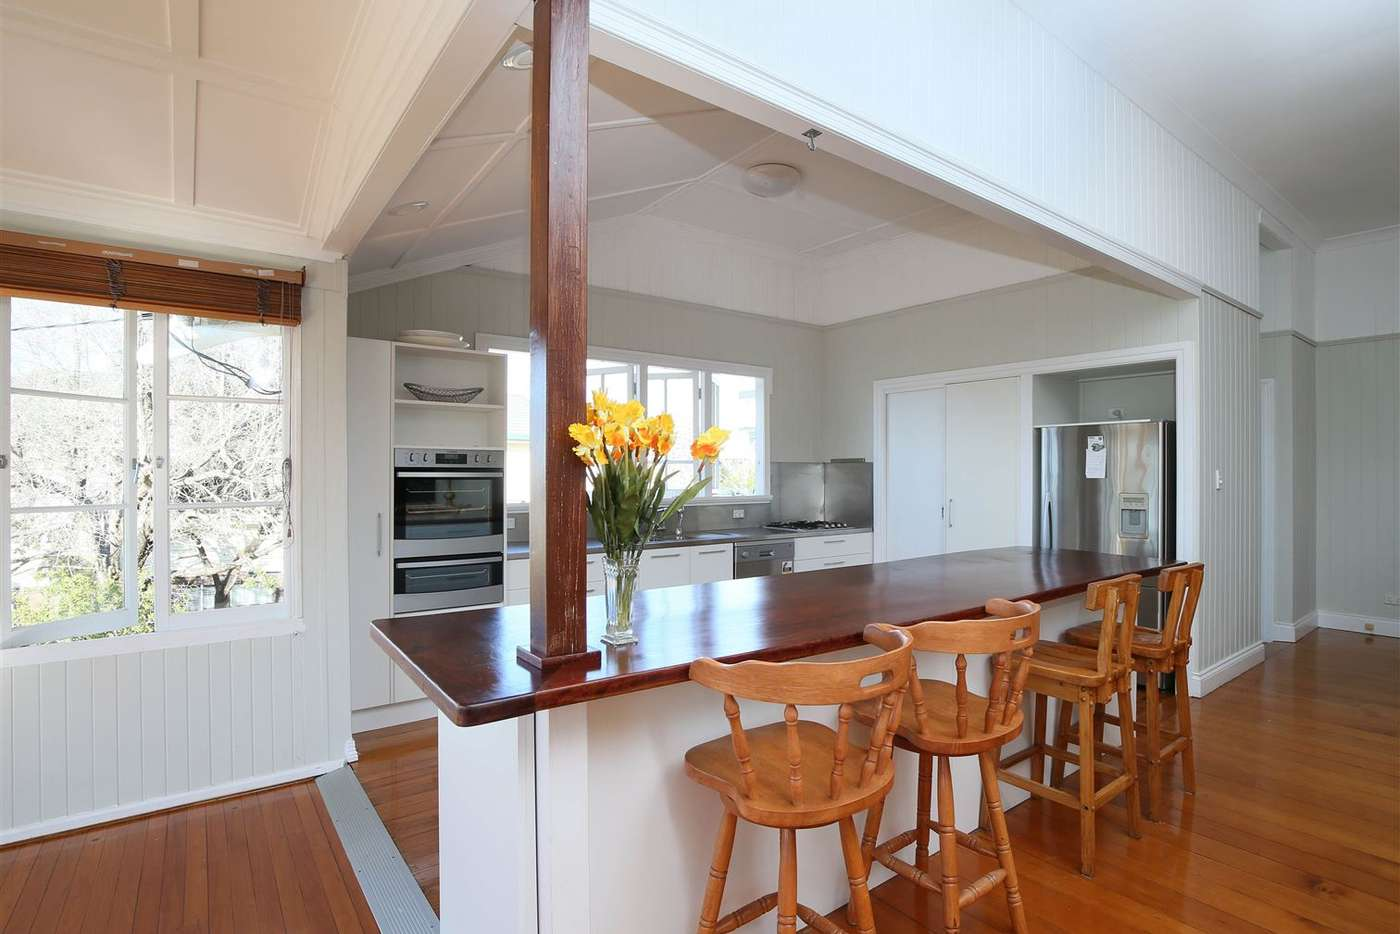 Main view of Homely apartment listing, 39 Upper Lancaster Road, Ascot QLD 4007